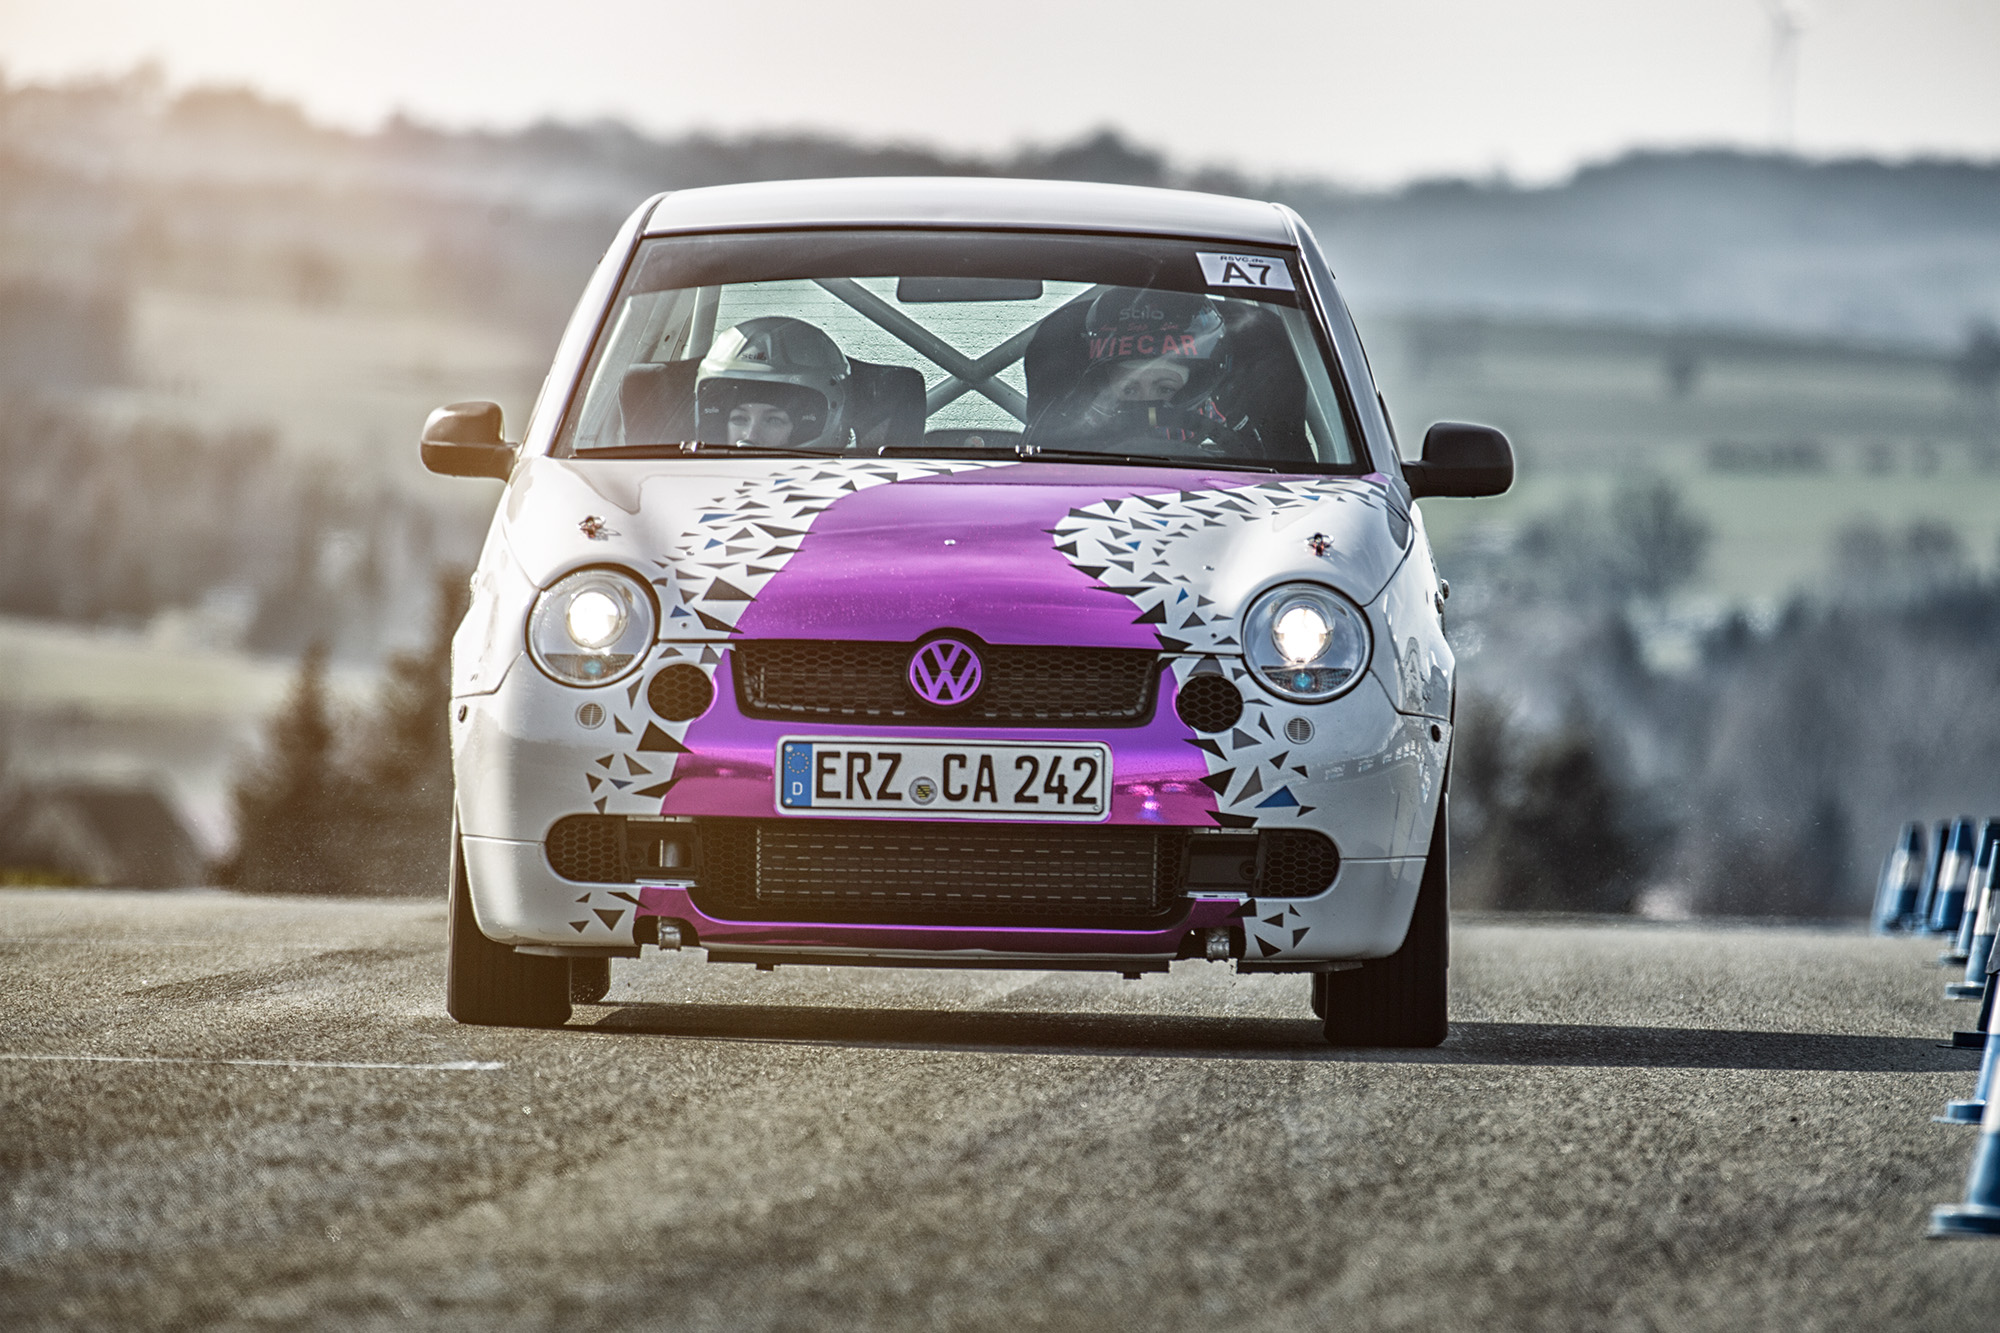 Tina Wiegand Lupinchen VW Lupo GTI Foto: Marko Unger